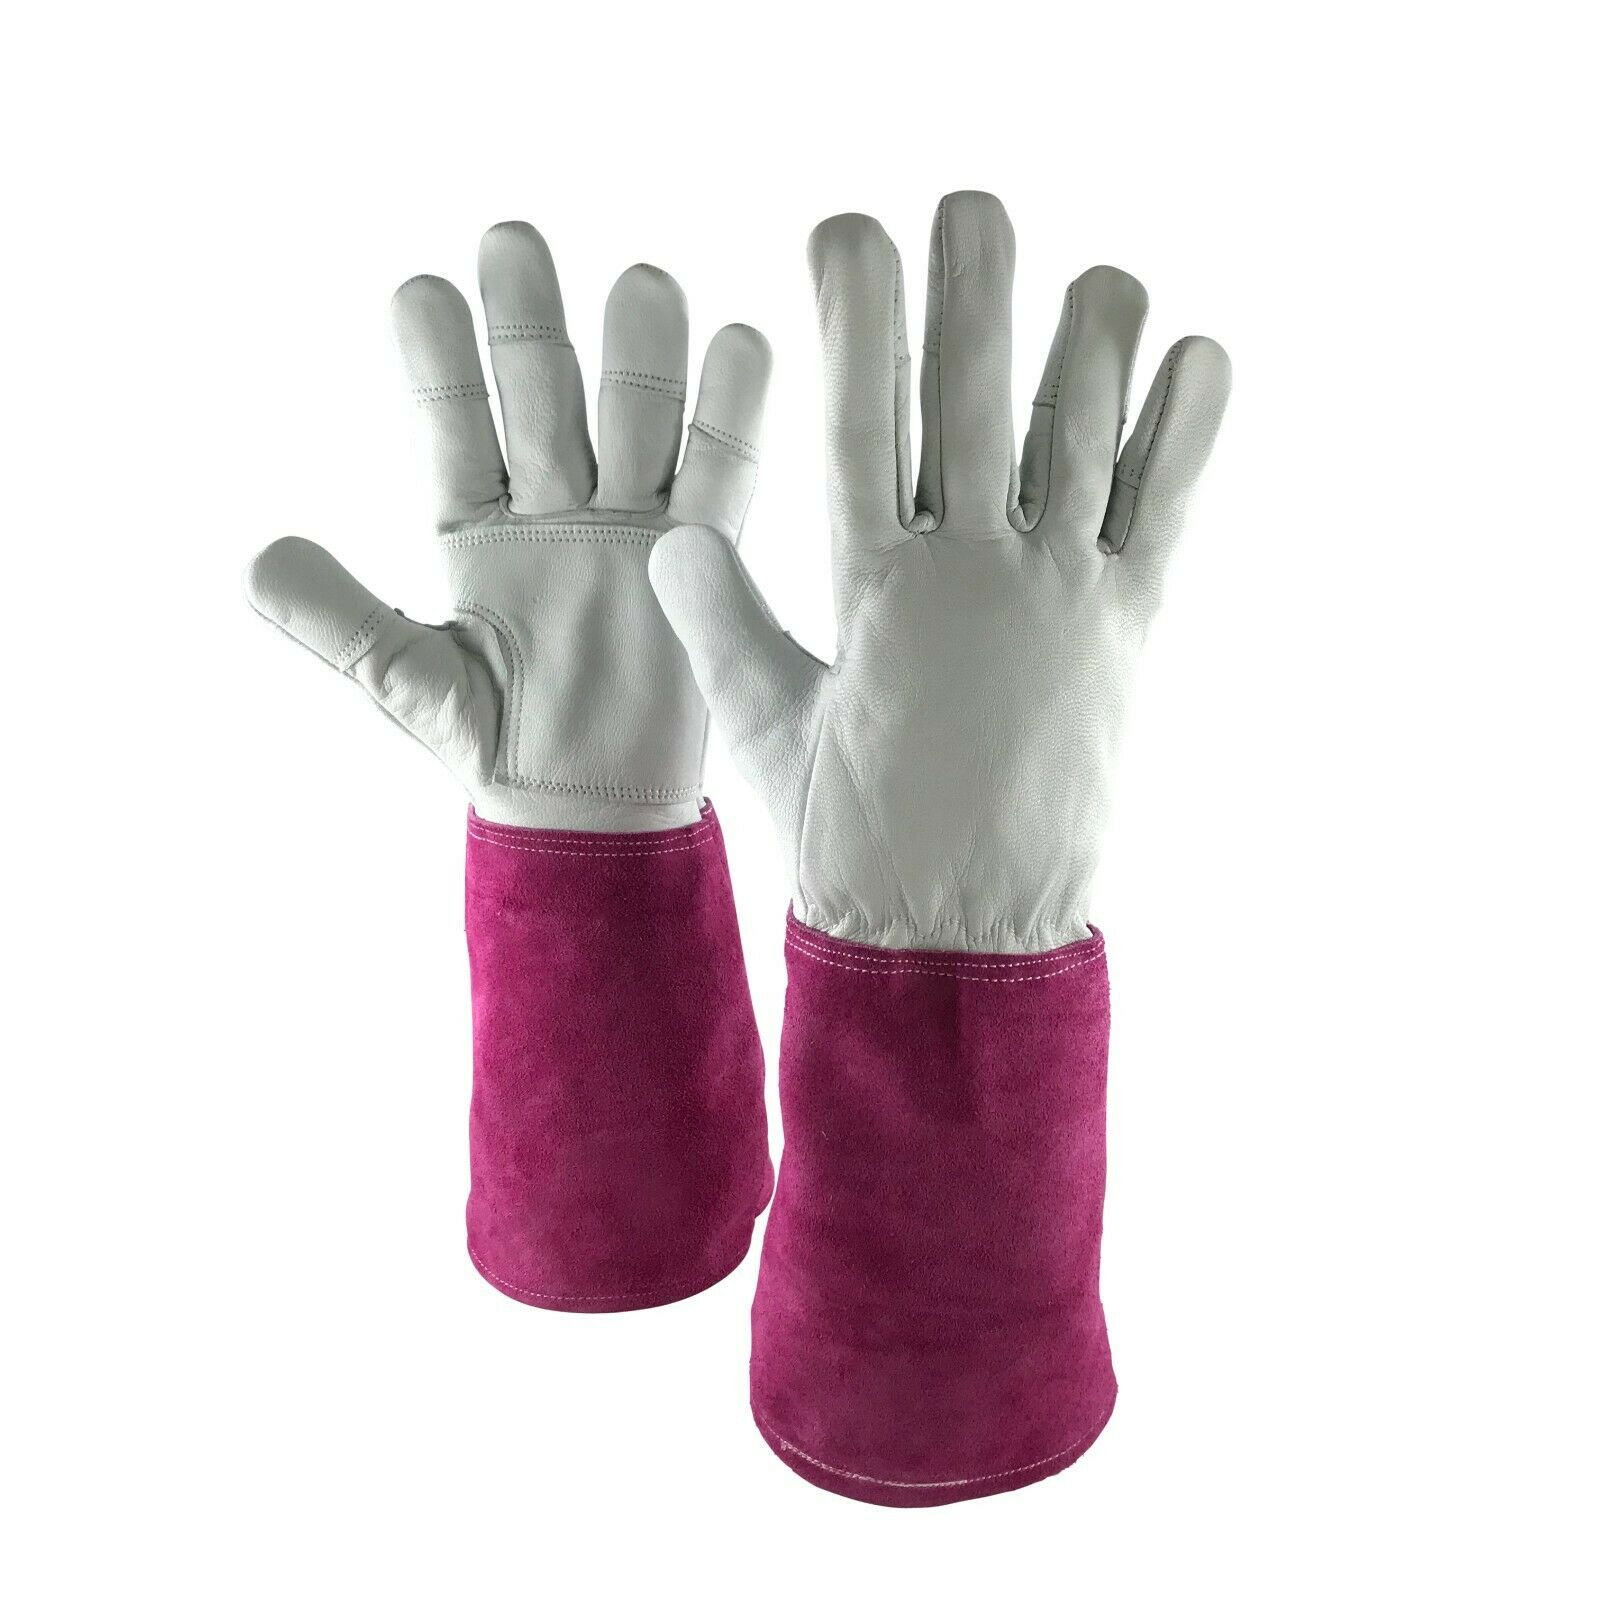 Ladies Long Sleeve Gardening Gloves   Thorn Proof Leather Gauntlet Garden  Gloves